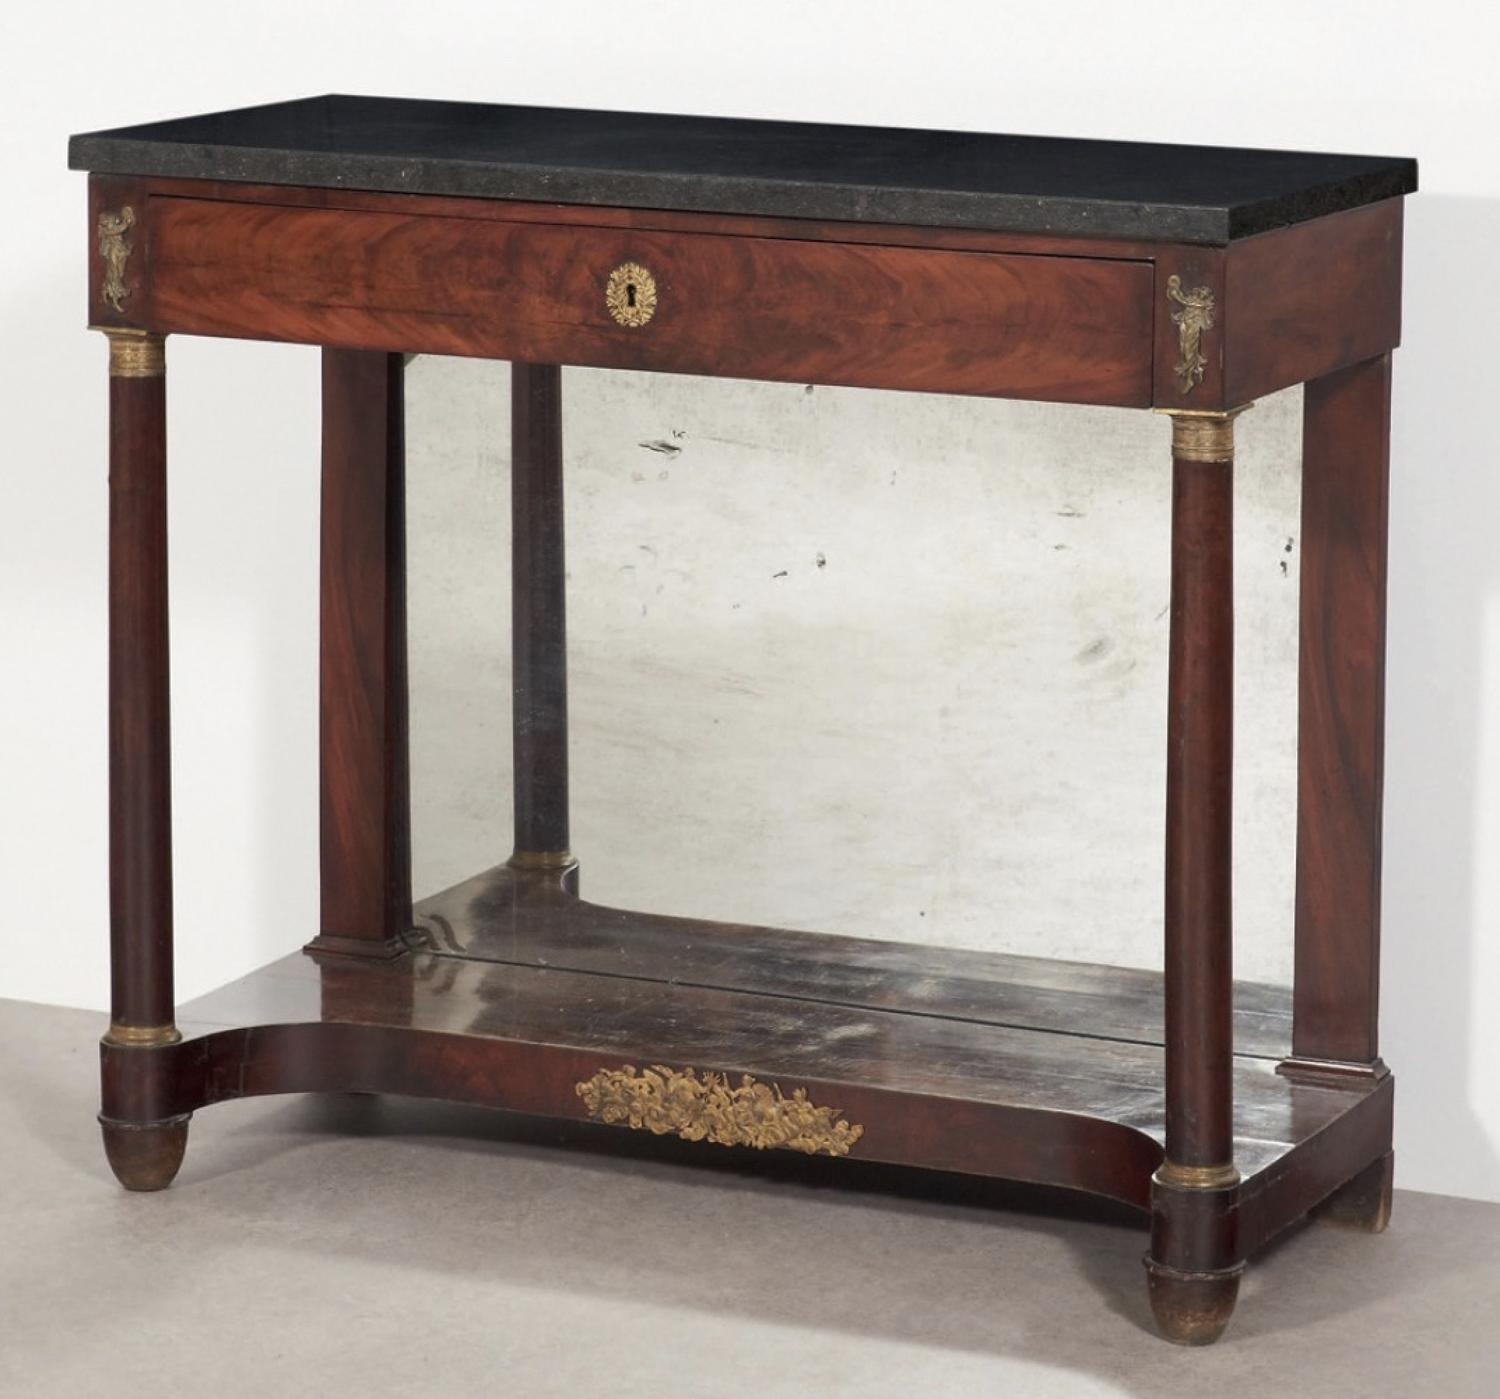 A RESTAURATION PERIOD MAHOGANY CONSOLE TABLE FRANCE C1825